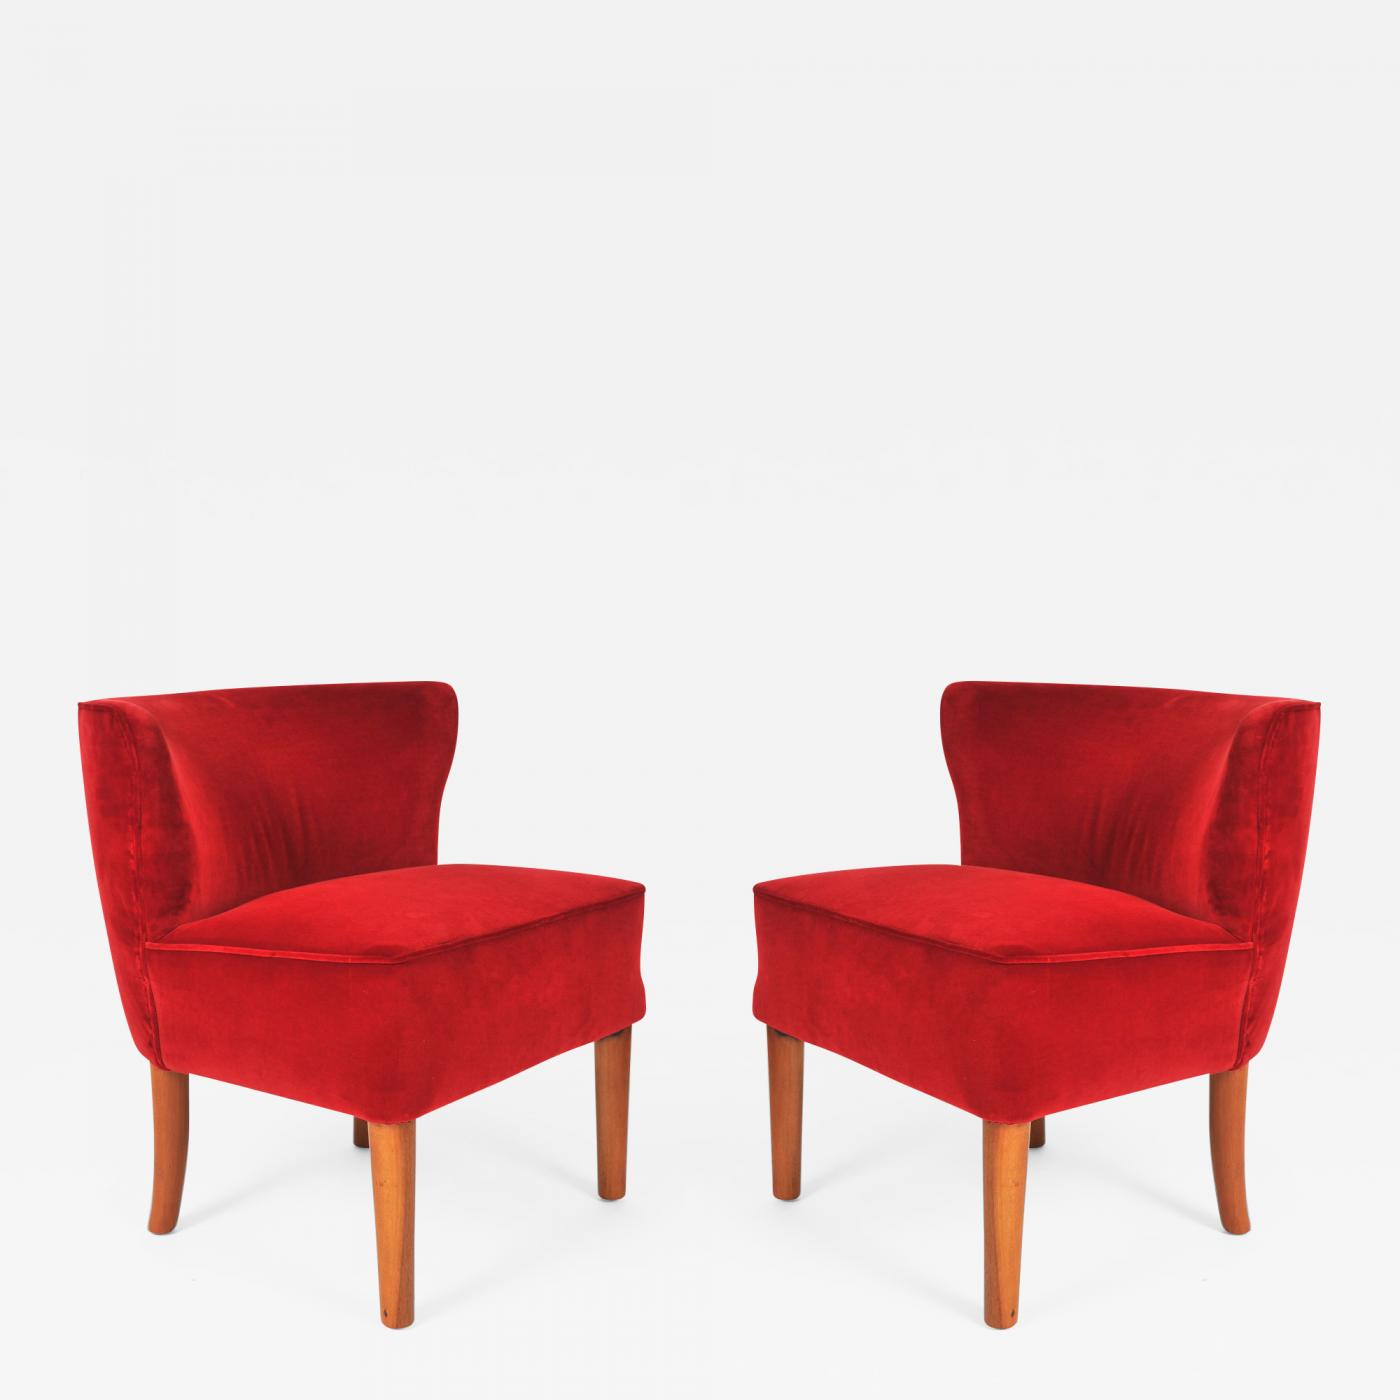 1950s Accent Chairs.Pair Of 1950s Italian Red Occasional Chairs